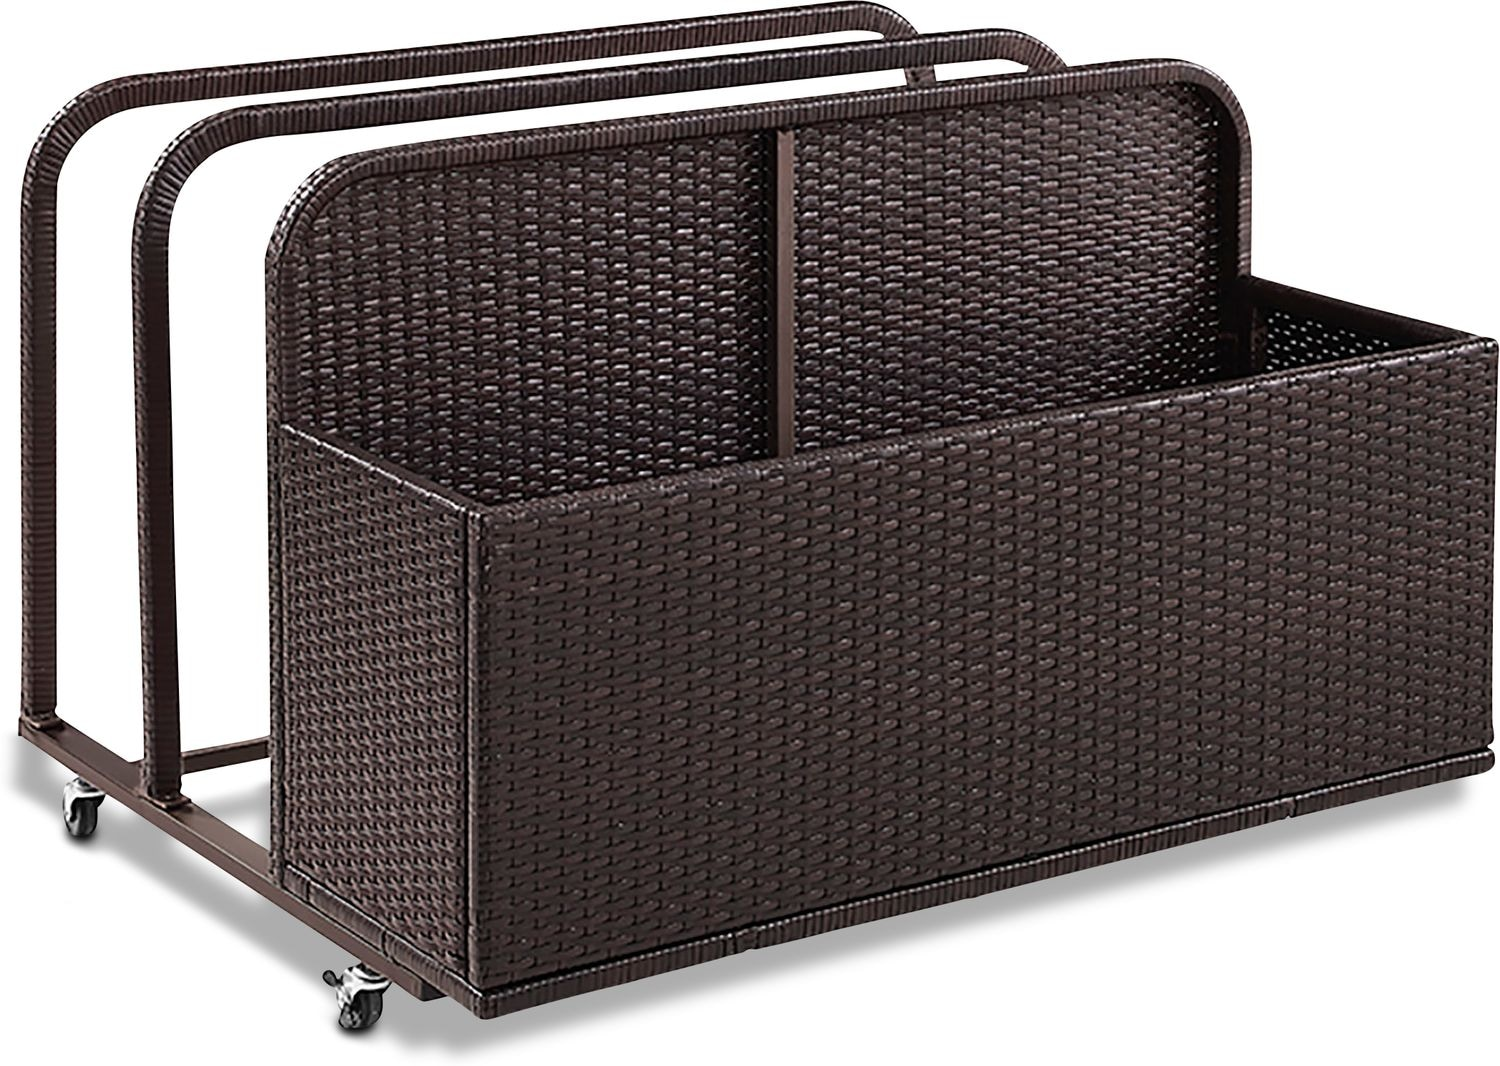 Outdoor Furniture - Aldo Outdoor Float Caddy